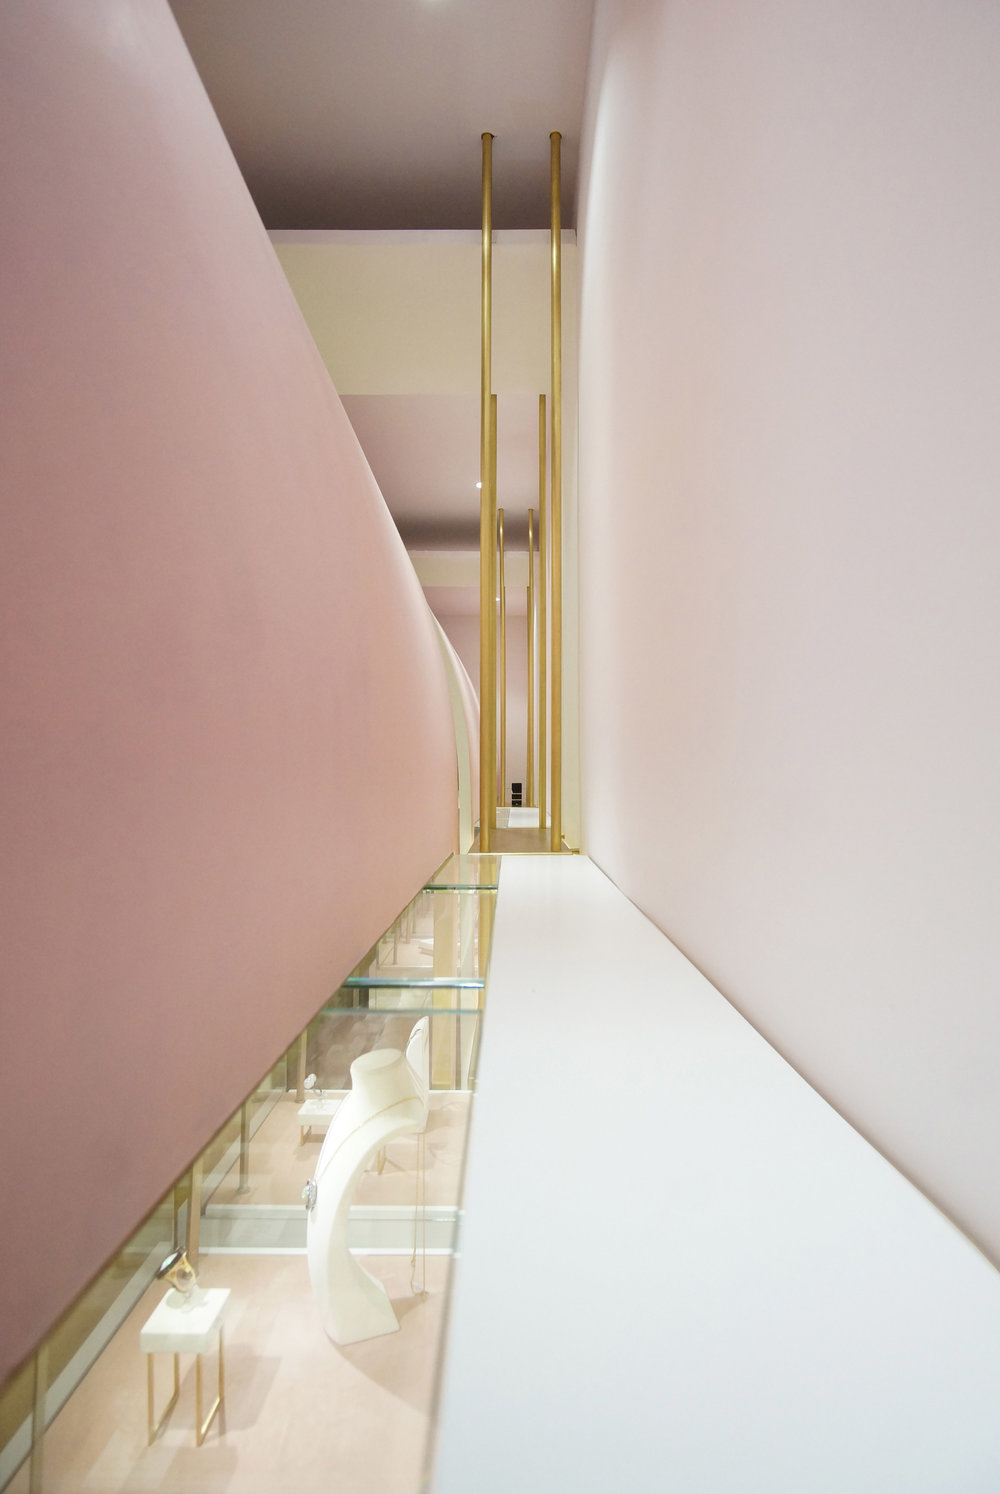 nuun-jewellery-shop-java-architectes-interiors-retail-paris-france_dezeen_2364_col_3.jpg